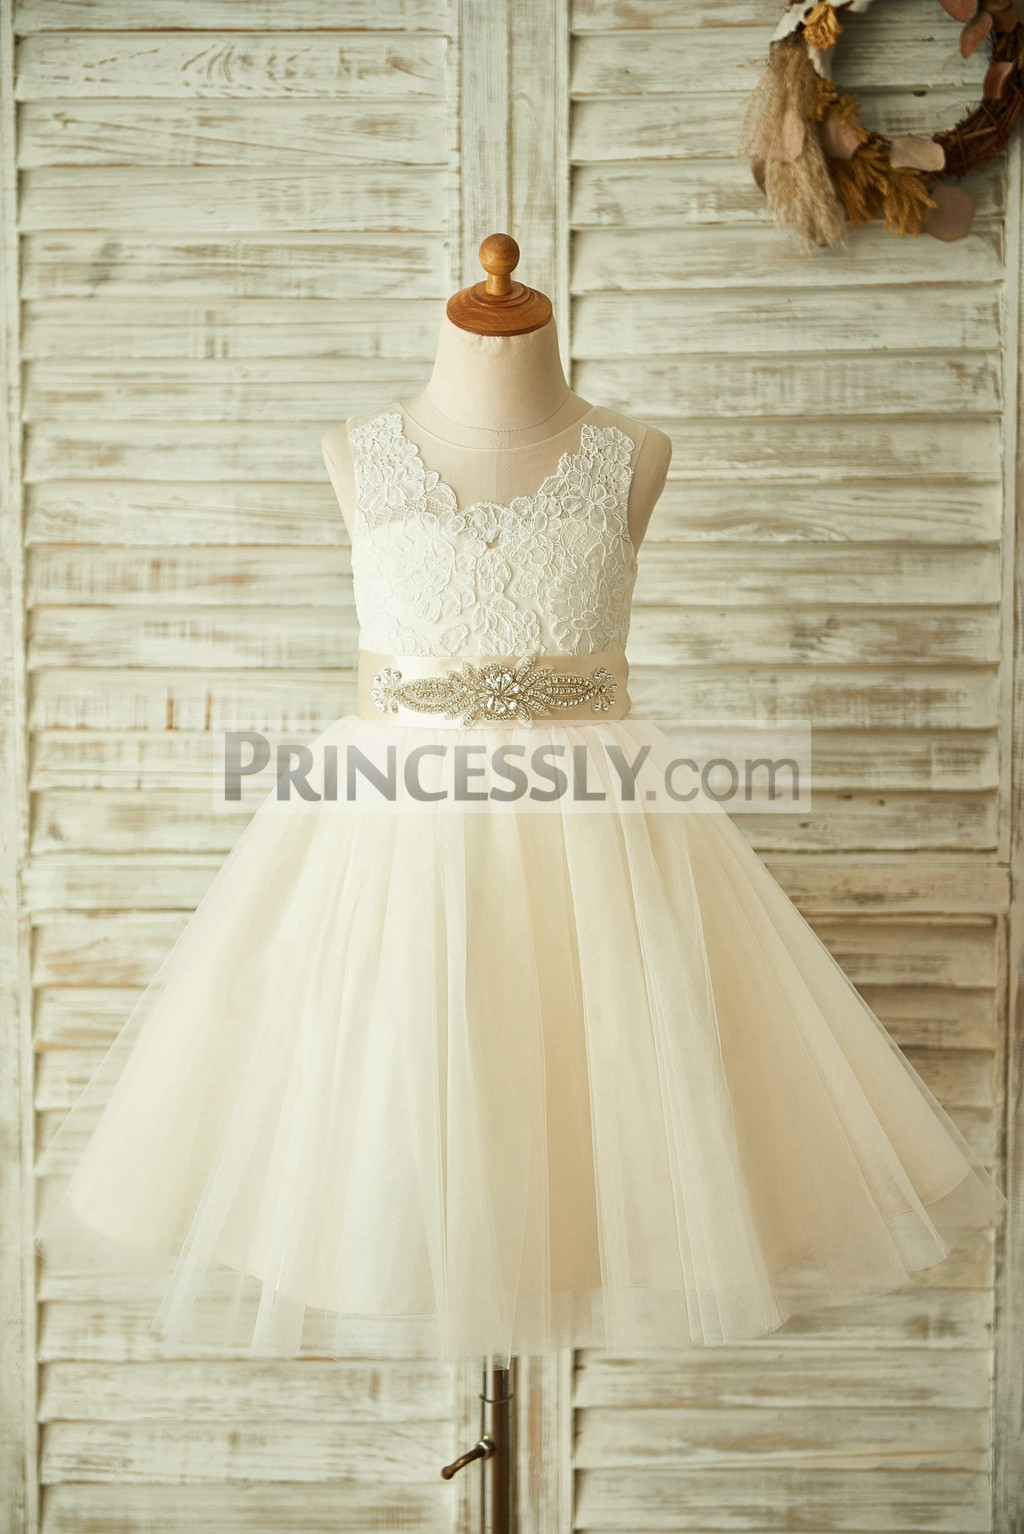 ff8939460 Champagne lace tulle flower girl dress with beaded sash. Champagne see  through back with buttons wedding baby ...